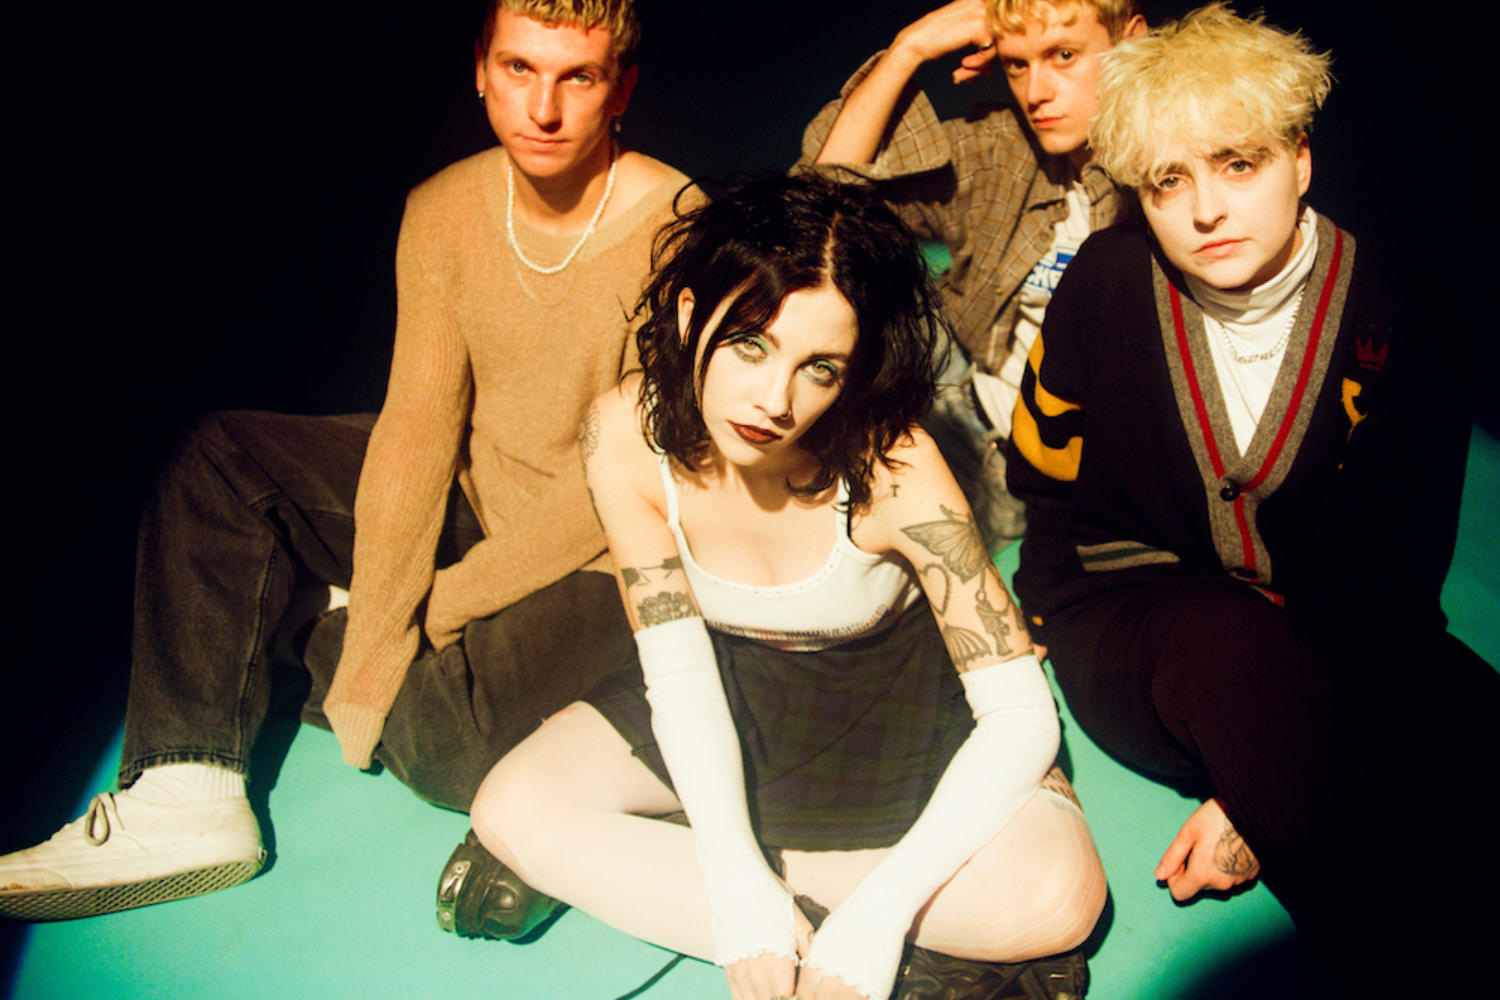 Pale Waves release new single 'Easy'